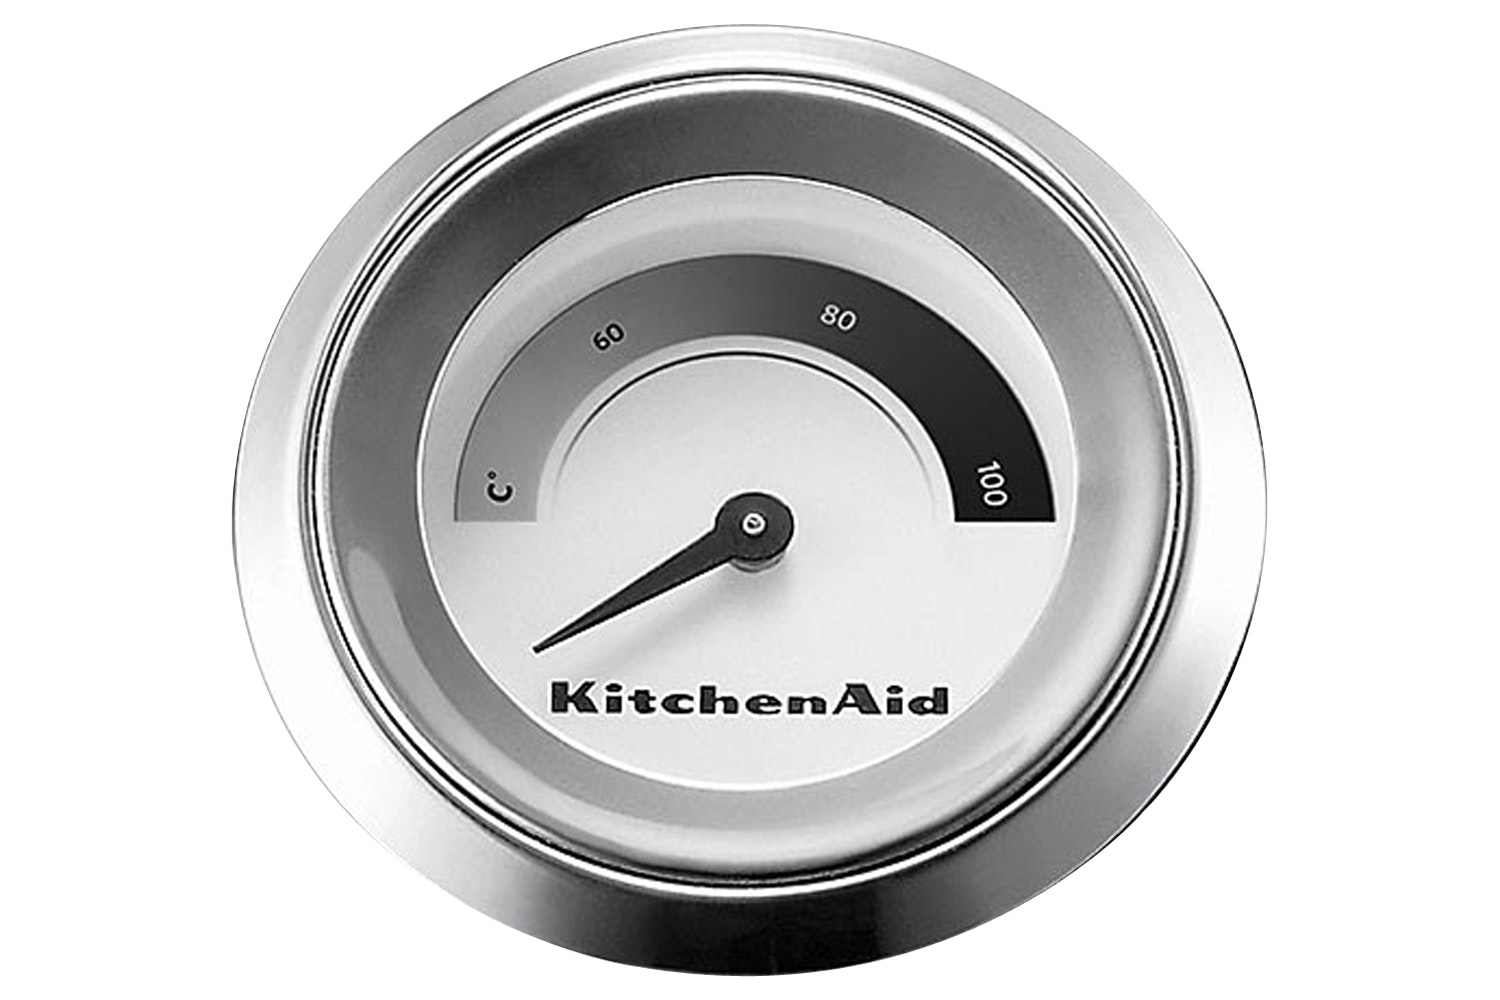 KitchenAid Artisan 1.5L Jug Kettle | 5KEK1522BAC | Almond Cream